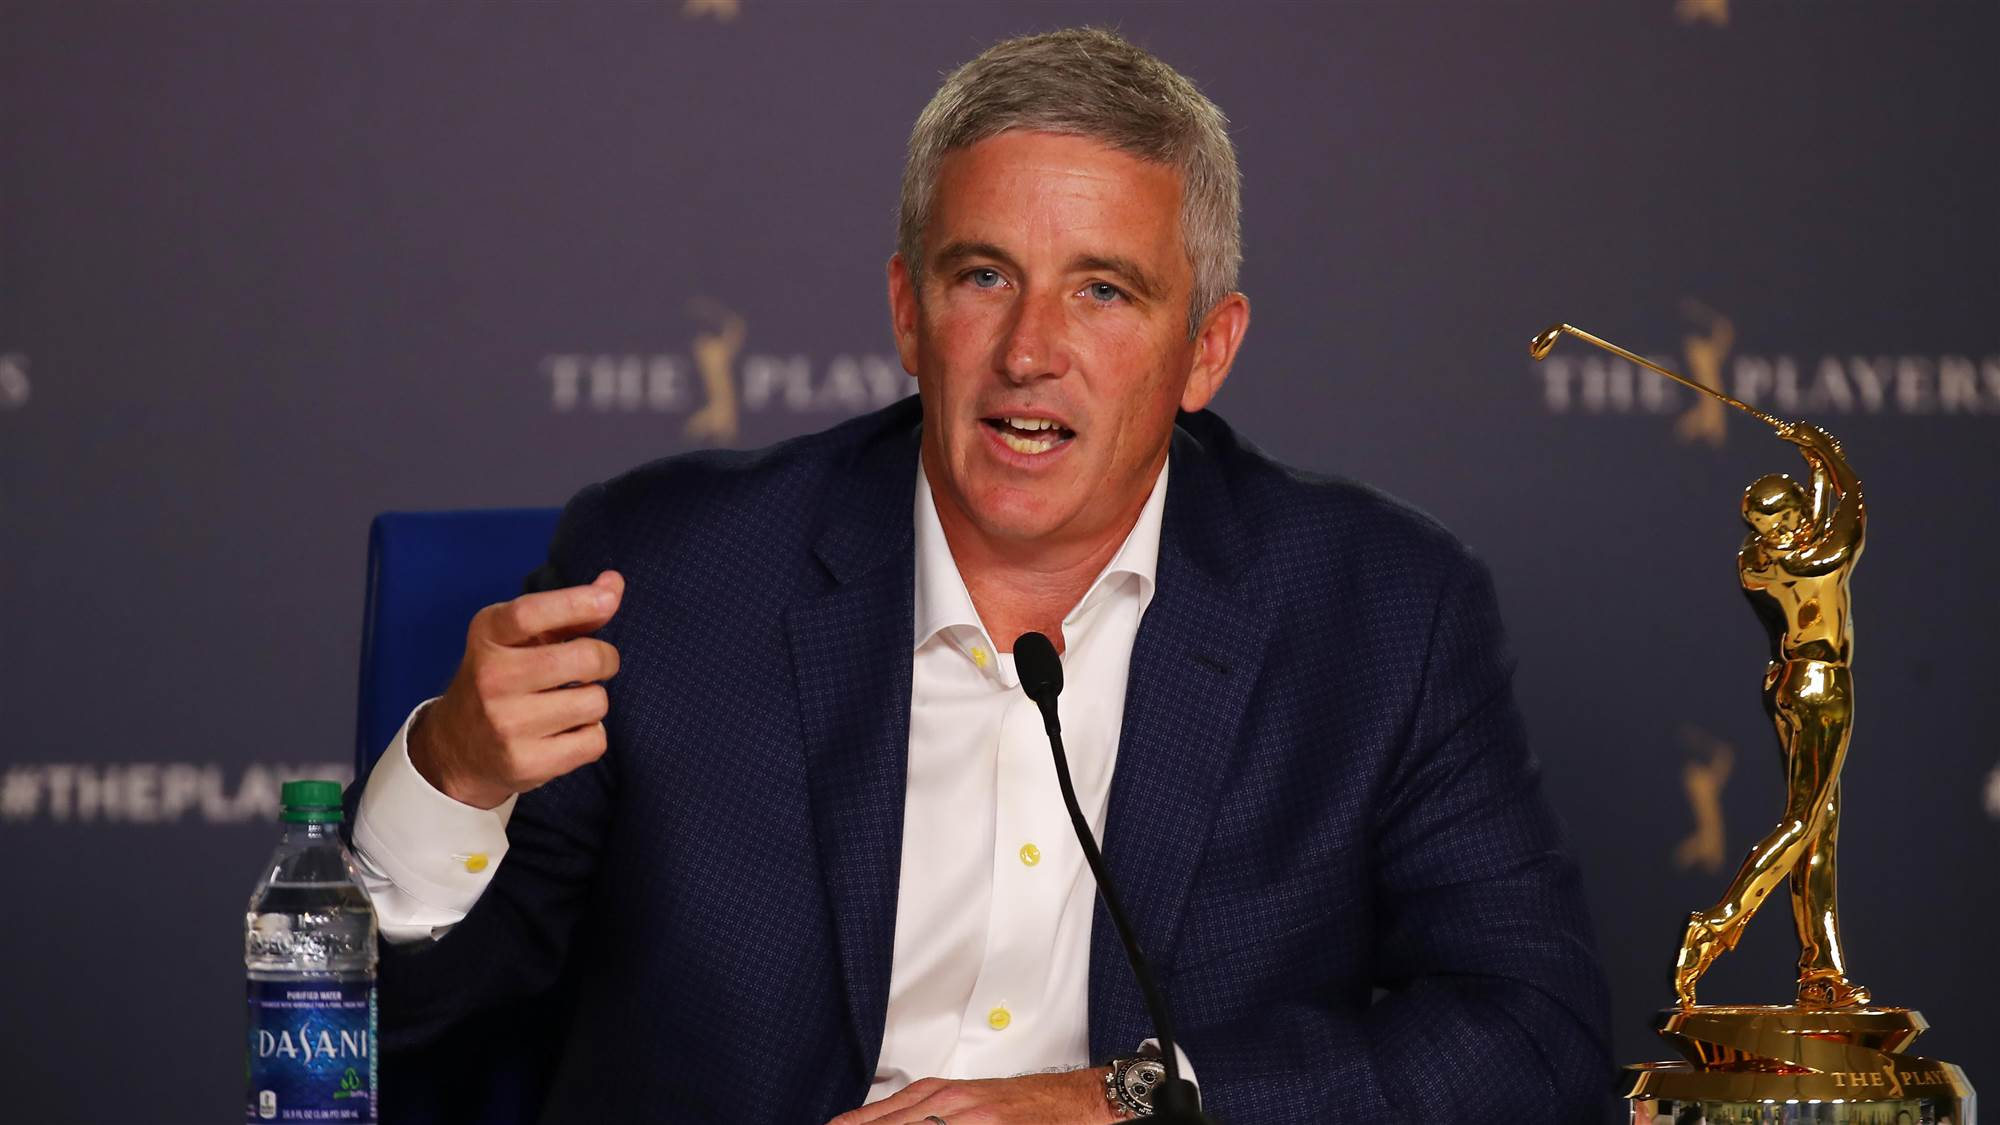 PGA Tour commissioner, Jay Monahan during a press conference with the media.